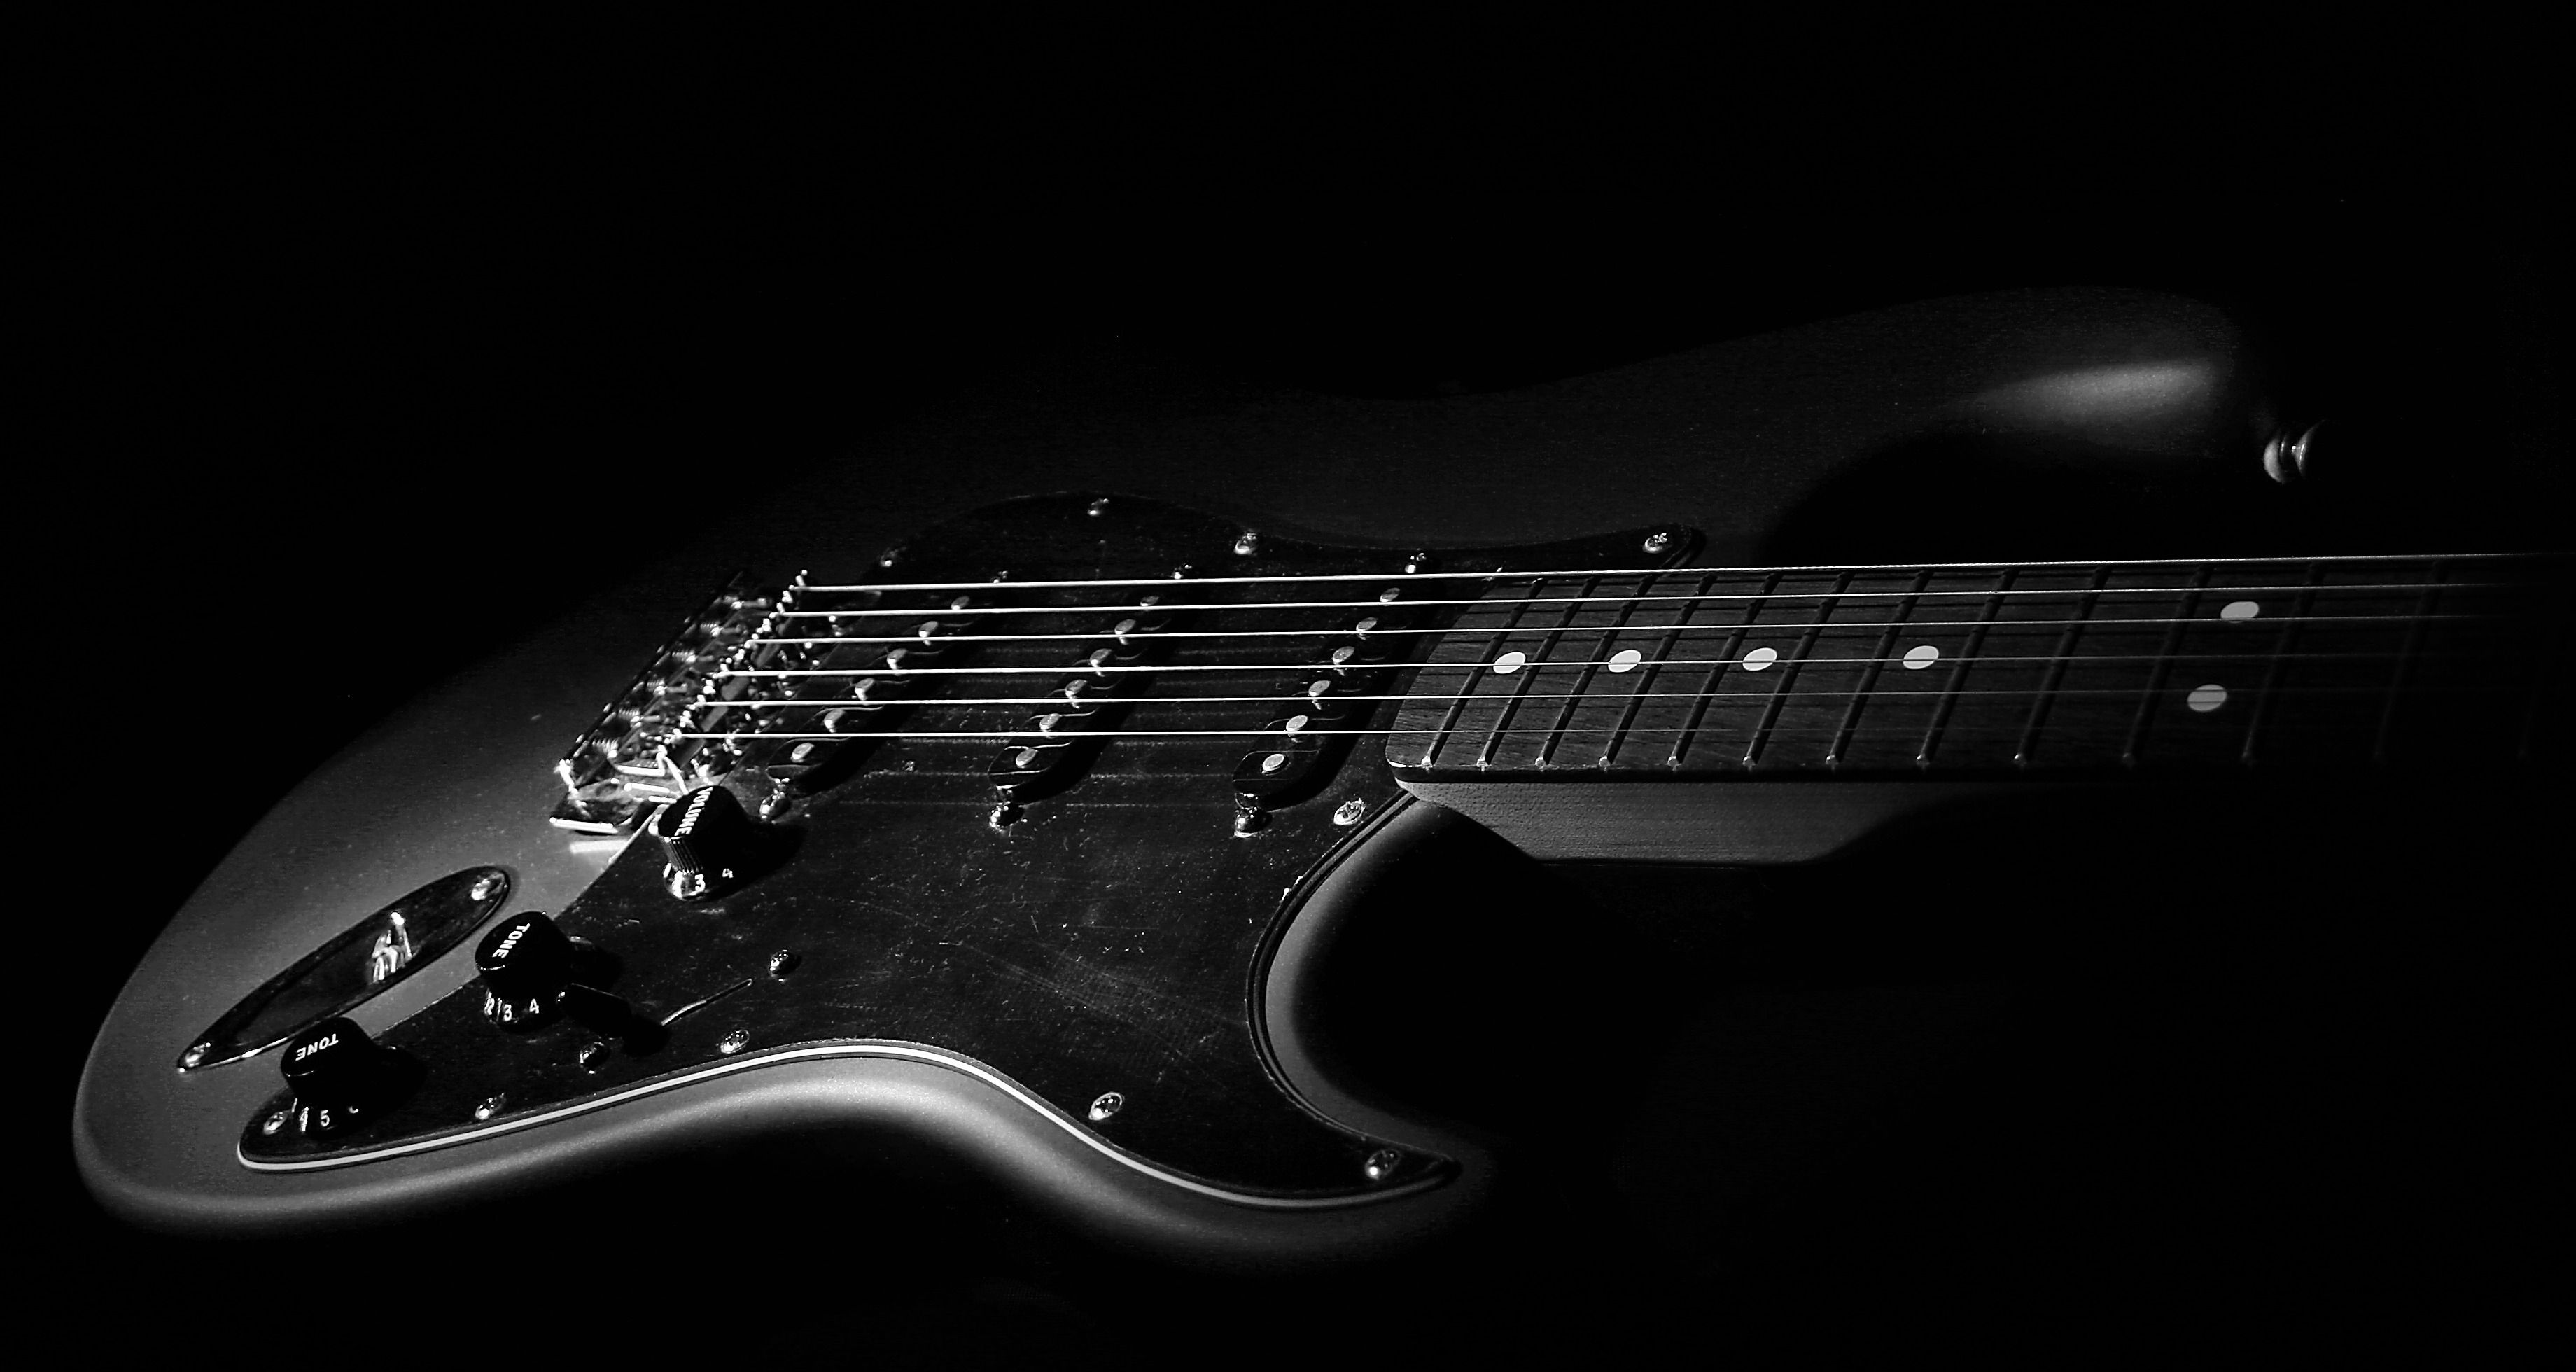 29 awesome fender strat wallpapers in high quality careen gorey